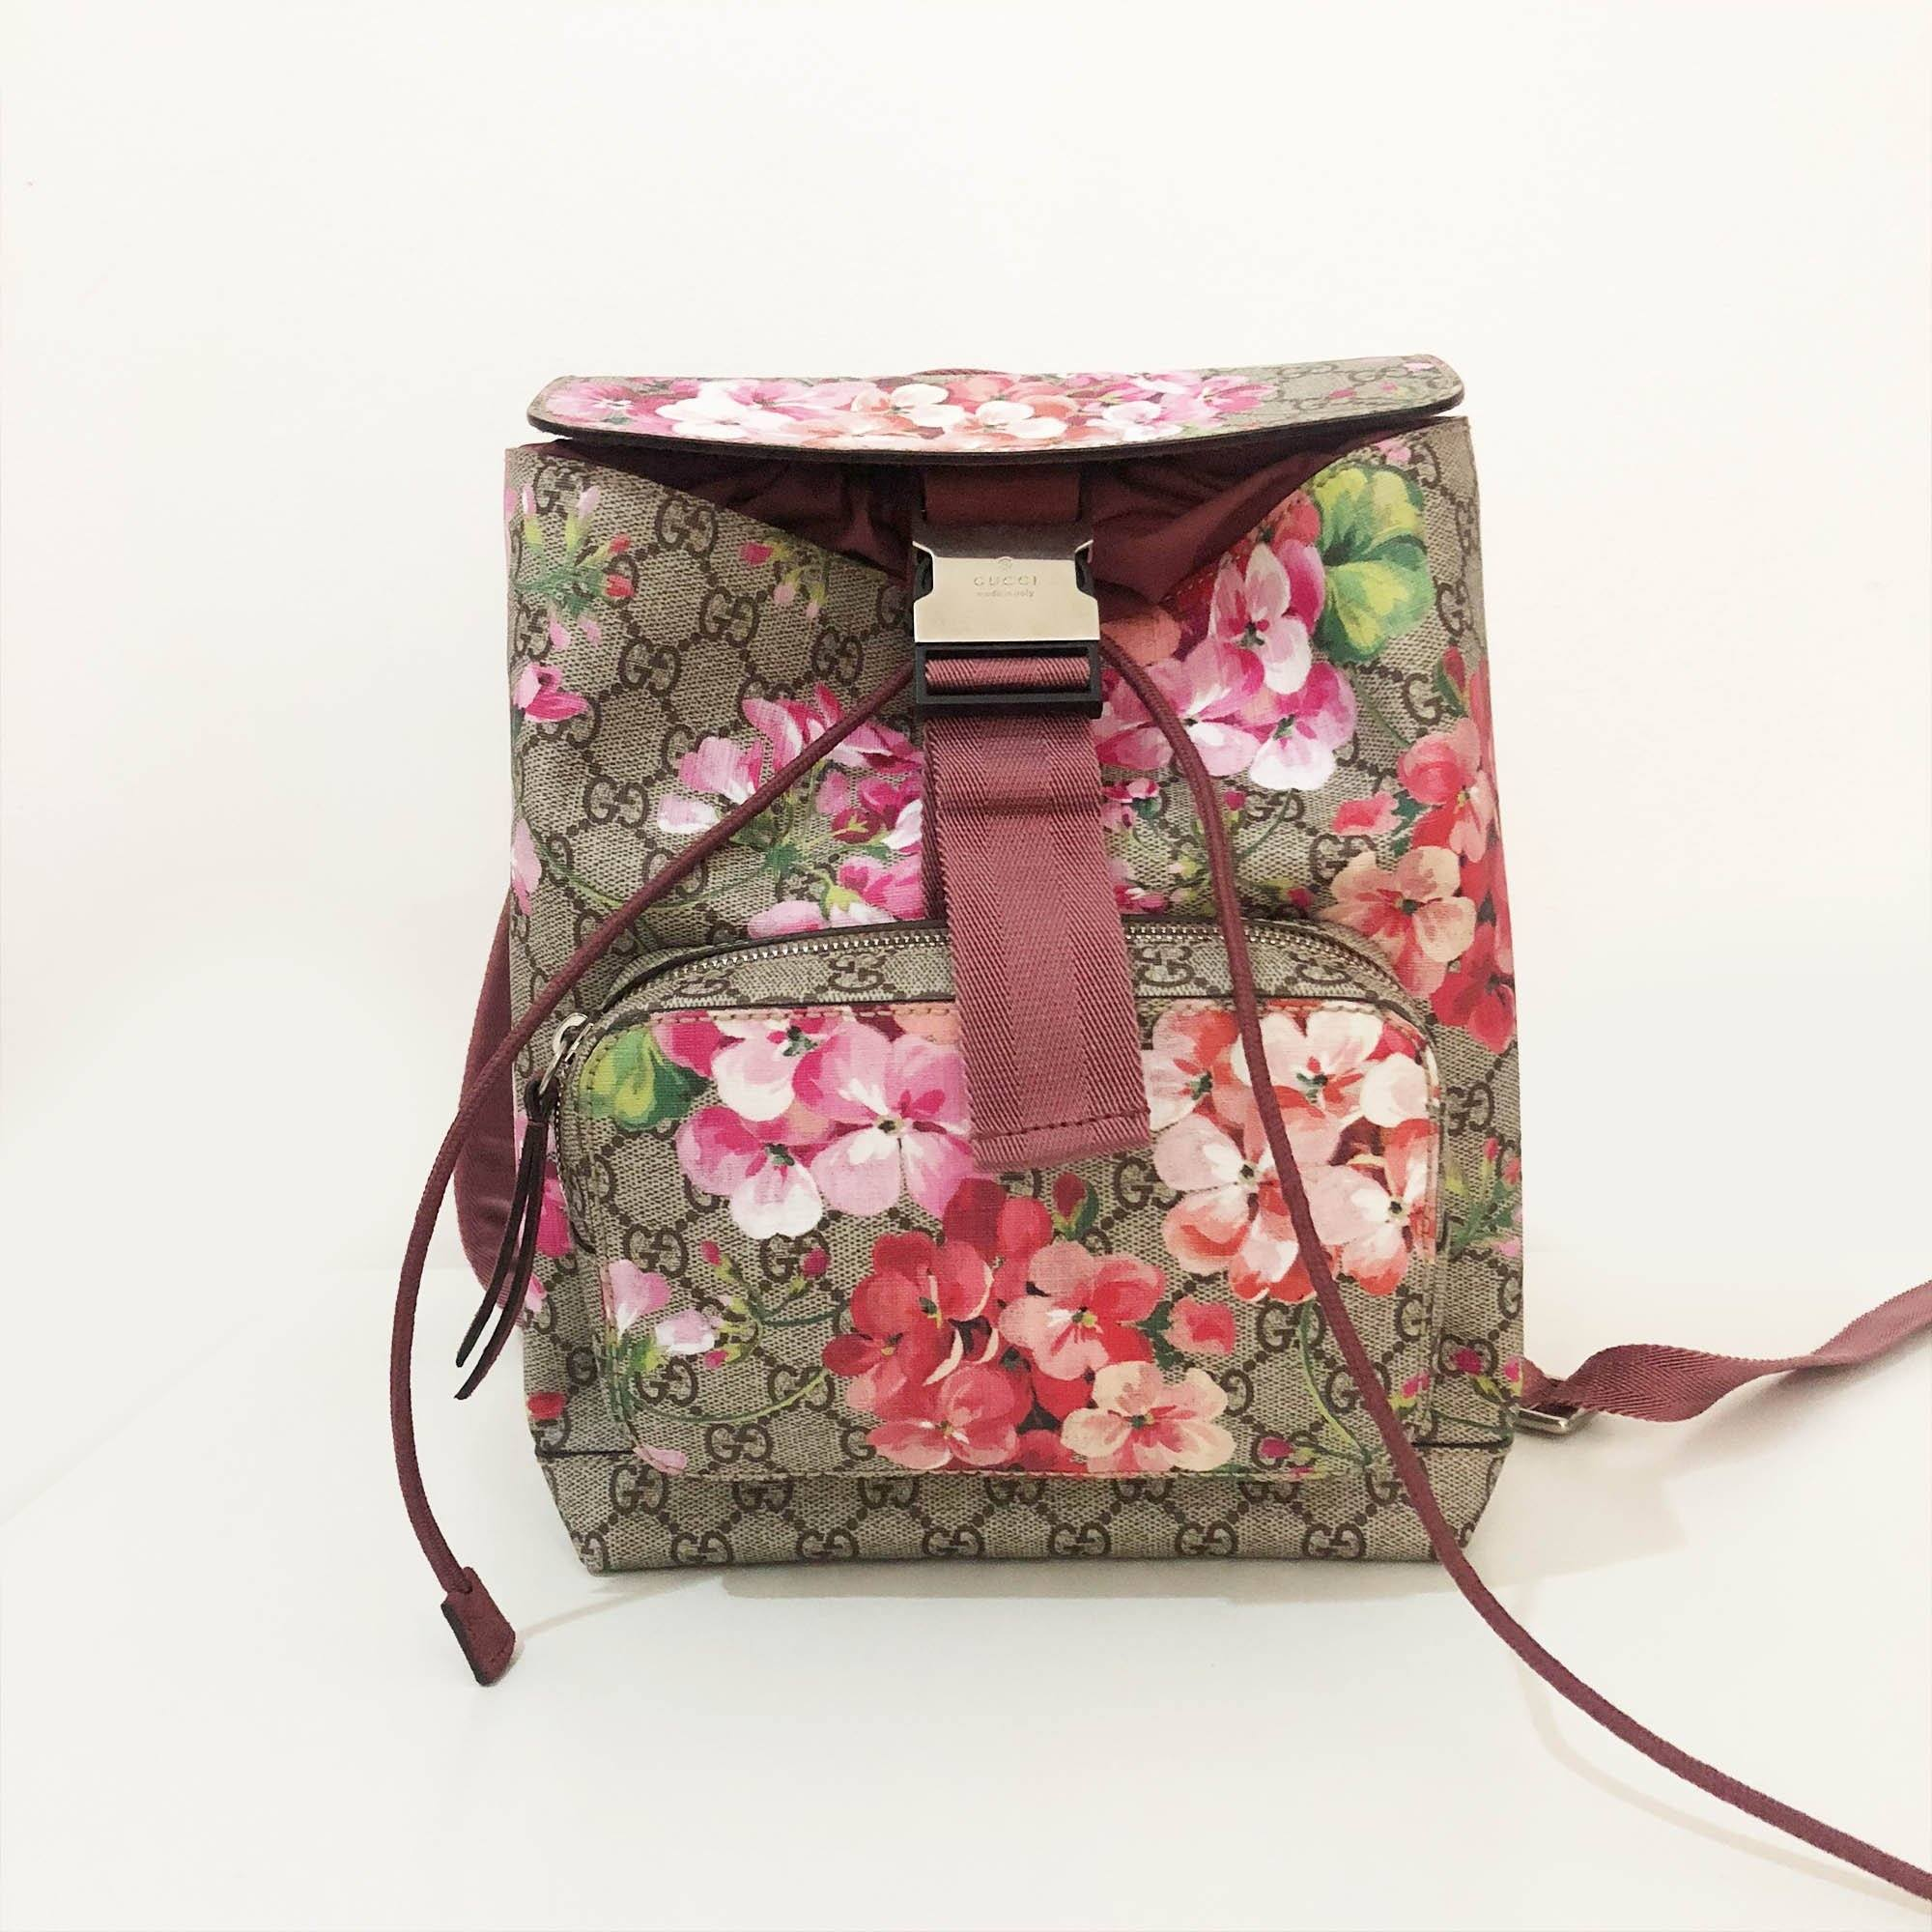 c25a22624ca Gucci GG Blooms Small Backpack – Garderobe